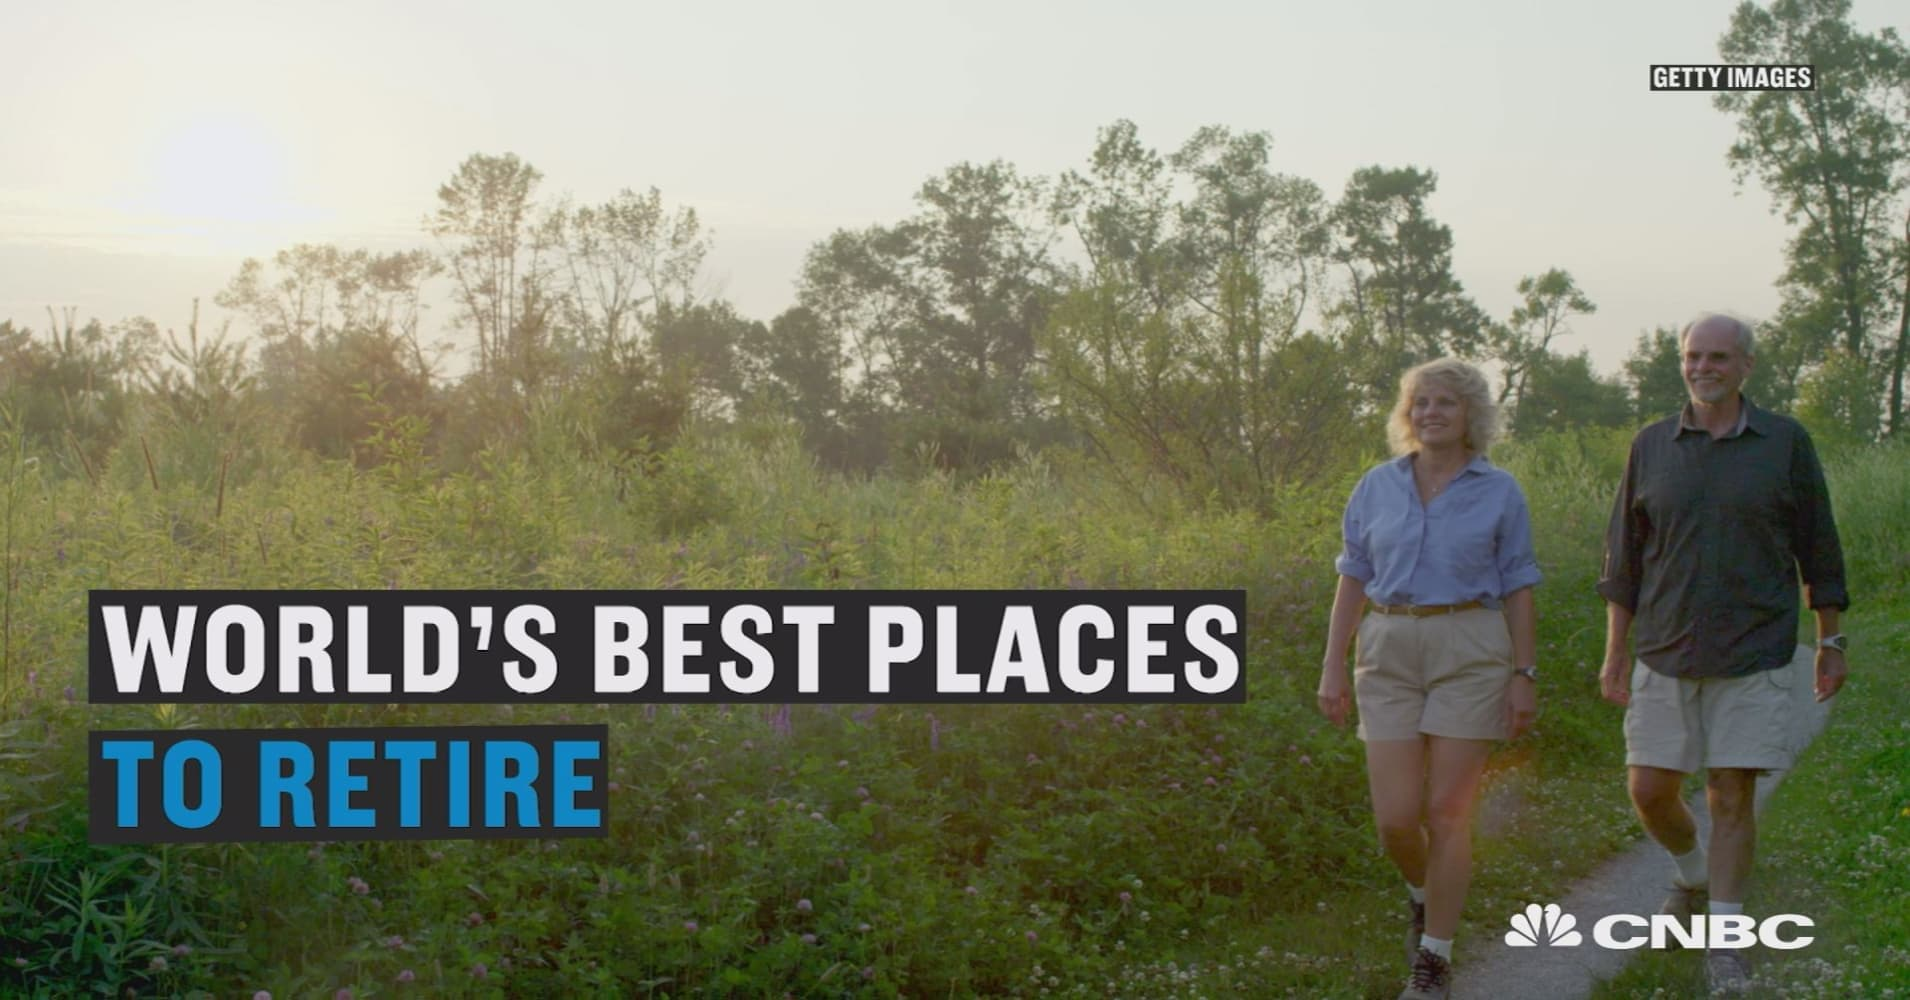 The world's best places to retire in 2017